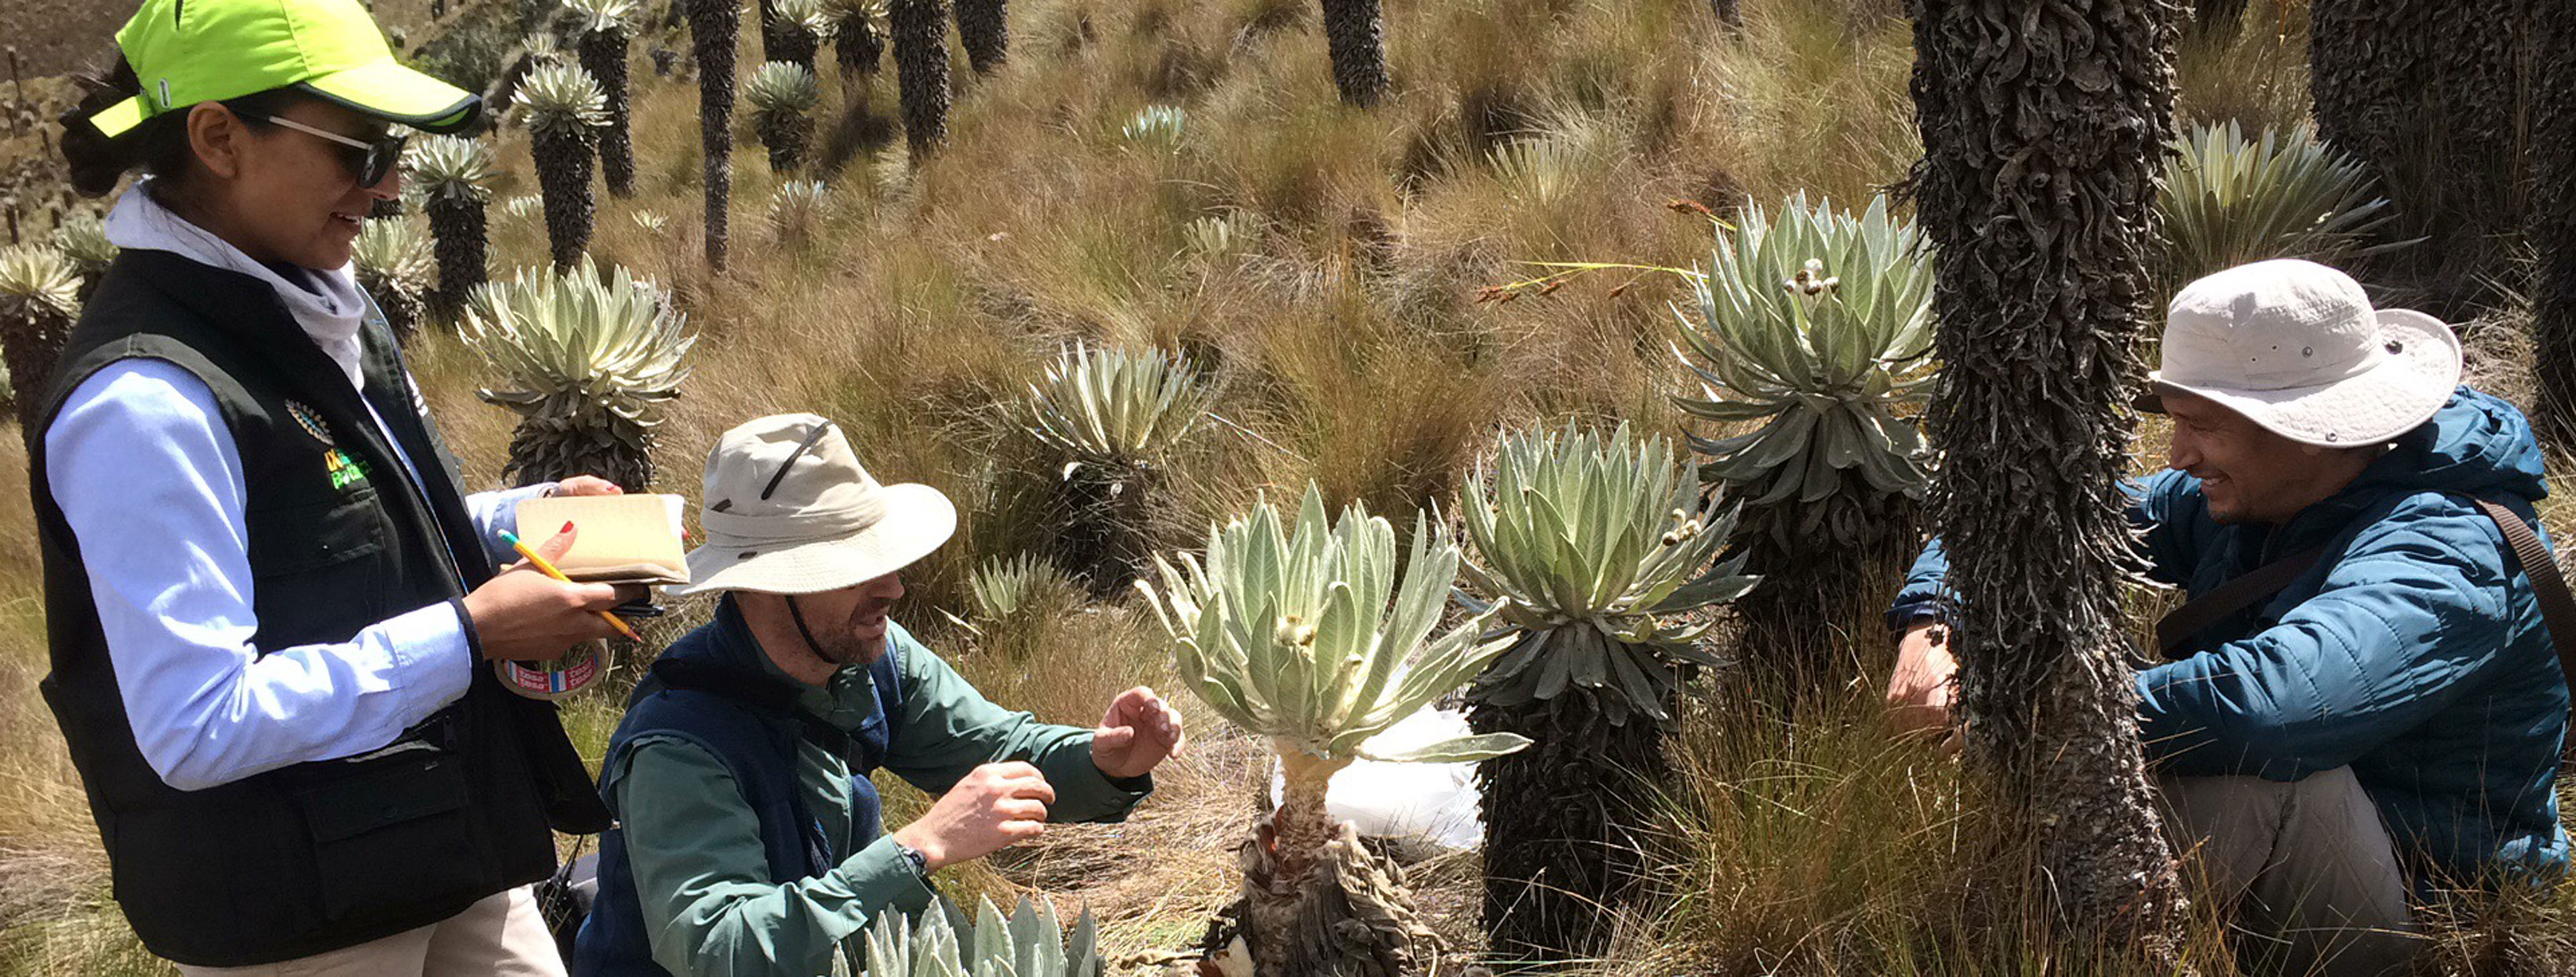 Researchers looking at plants in Colombian Paramos